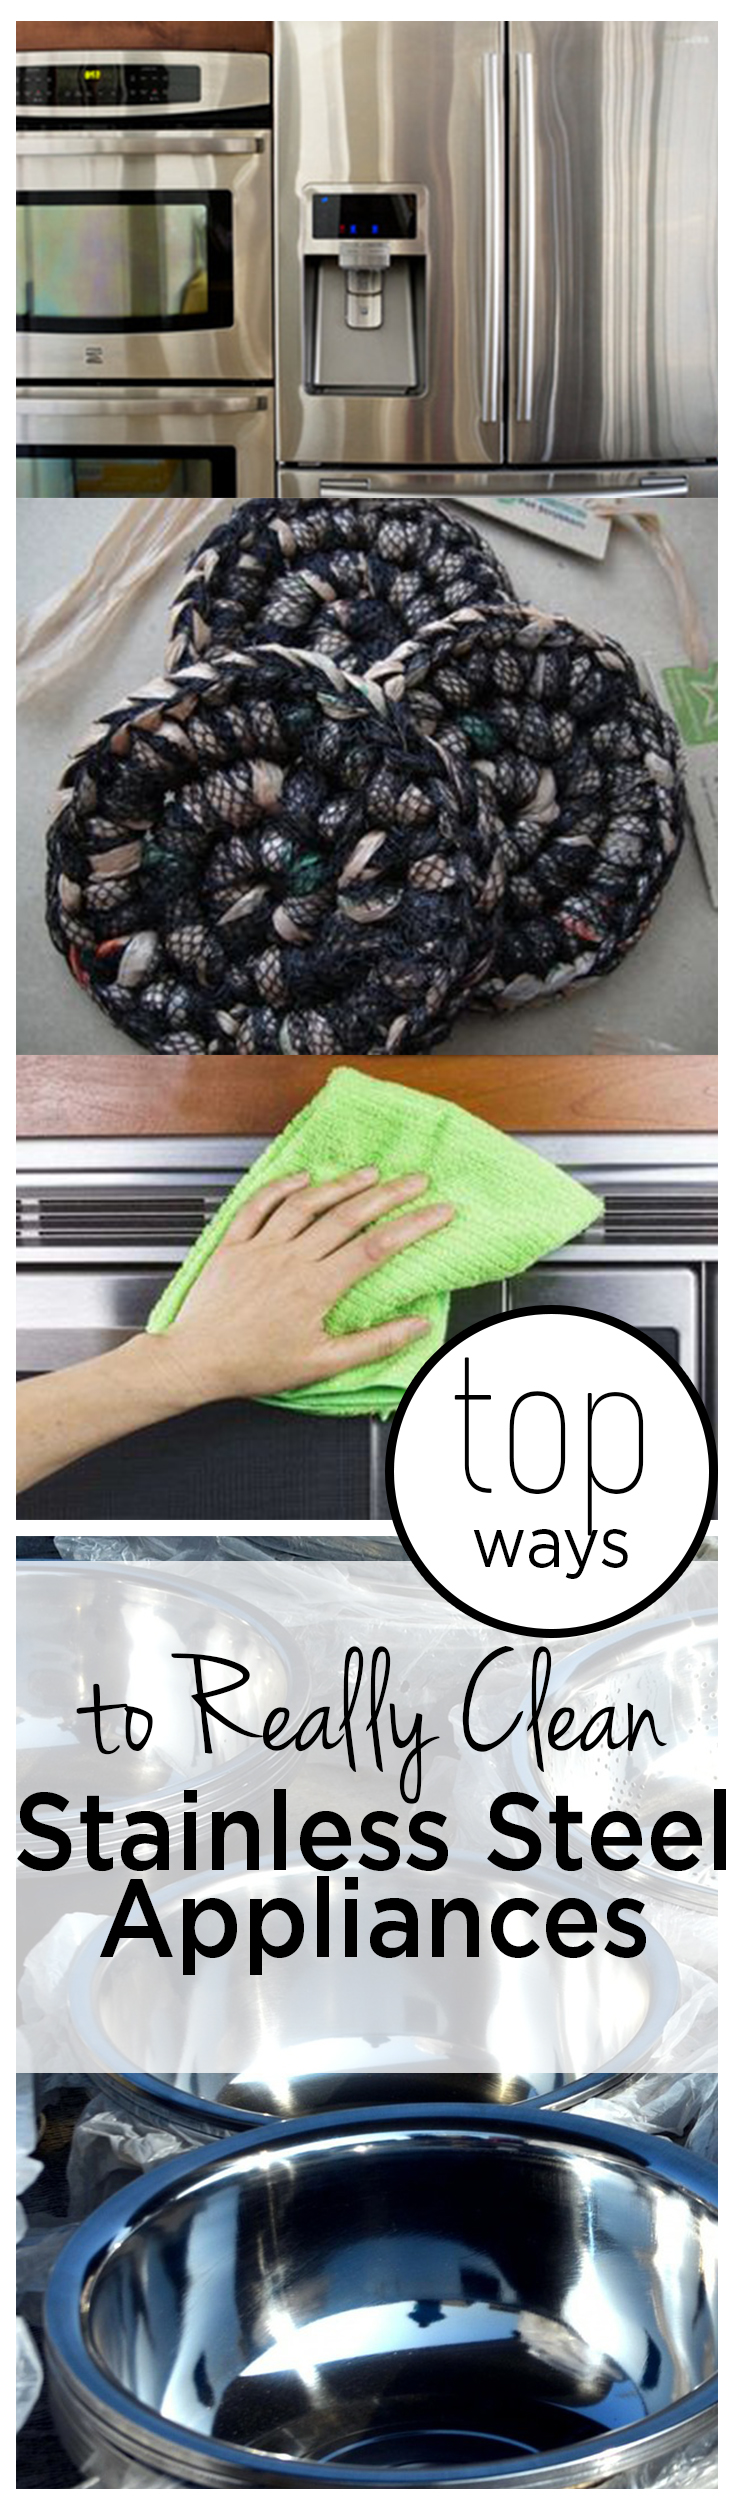 Top Ways To Really Clean